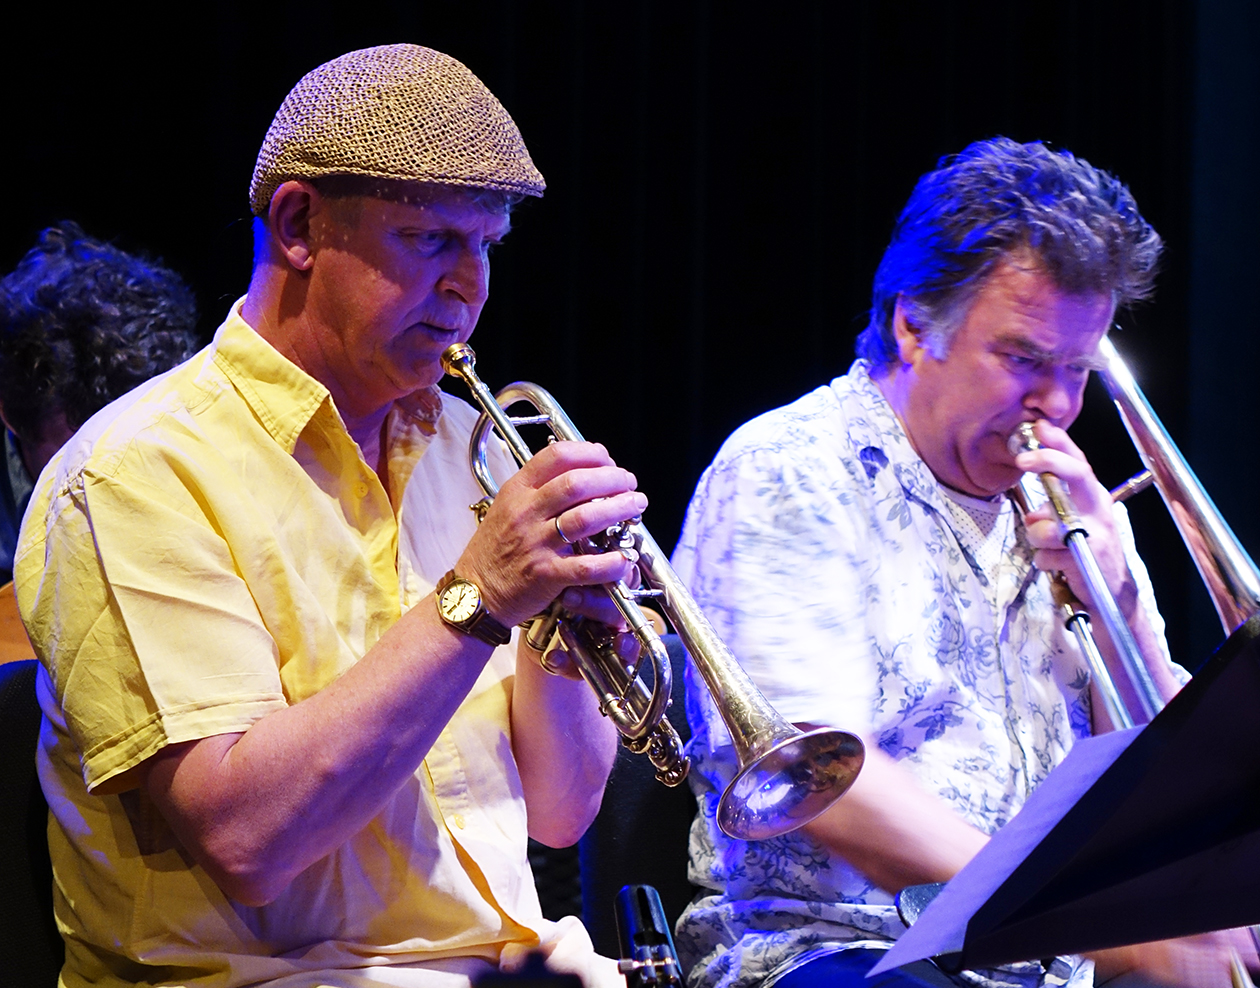 Eric Boeren and Wolter Wierbos at Doek Festival 2015